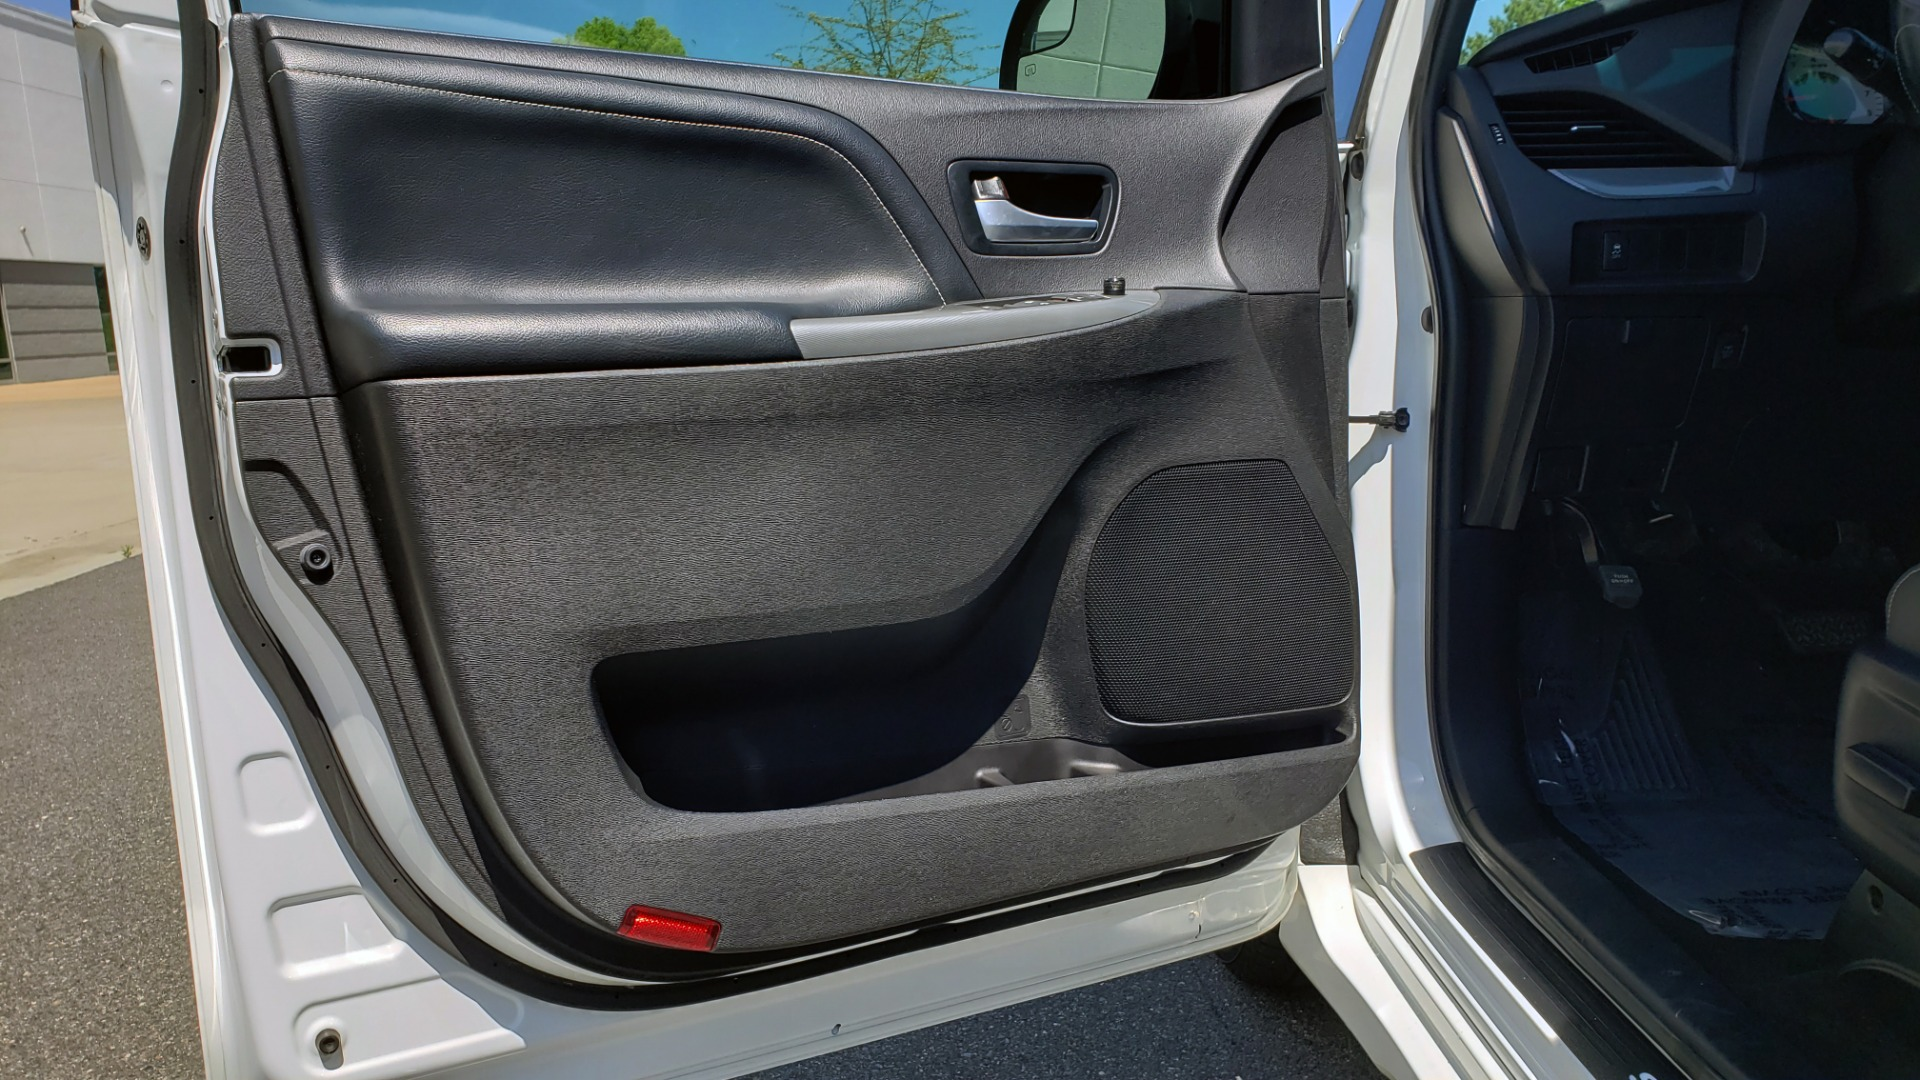 Used 2015 Toyota SIENNA SE 3.5L / FWD / 3-ROWS / 8-PASS / SUNROOF / DVD / REARVIEW for sale $21,995 at Formula Imports in Charlotte NC 28227 34